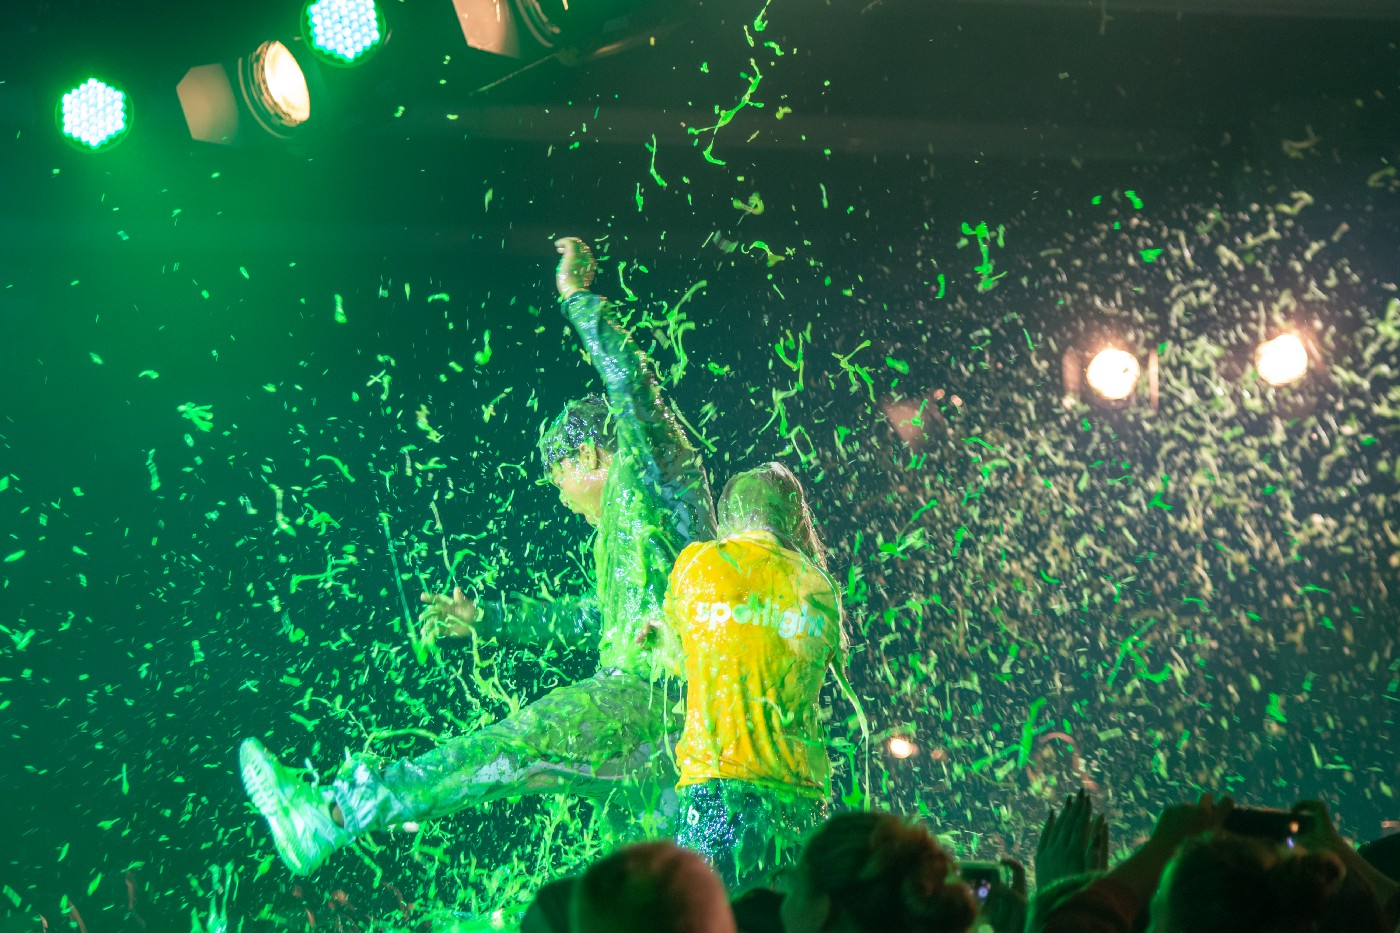 People on a stage get covered in slime.